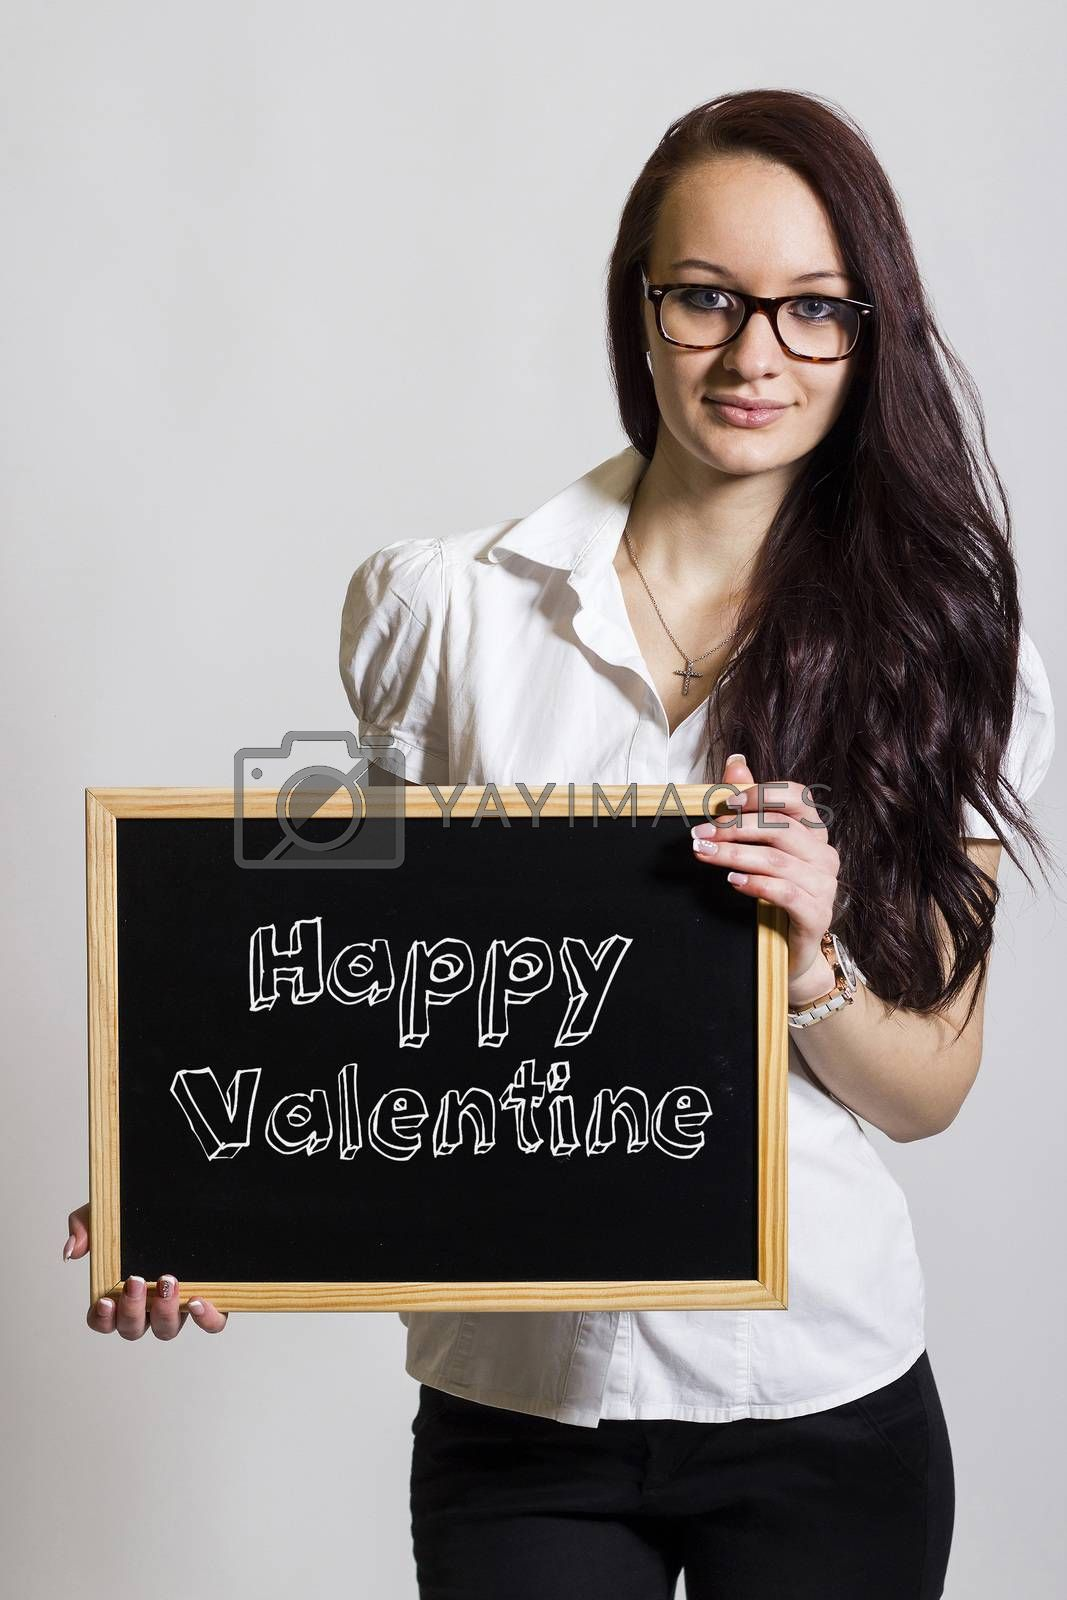 Happy Valentine - Young businesswoman holding chalkboard - vertical image